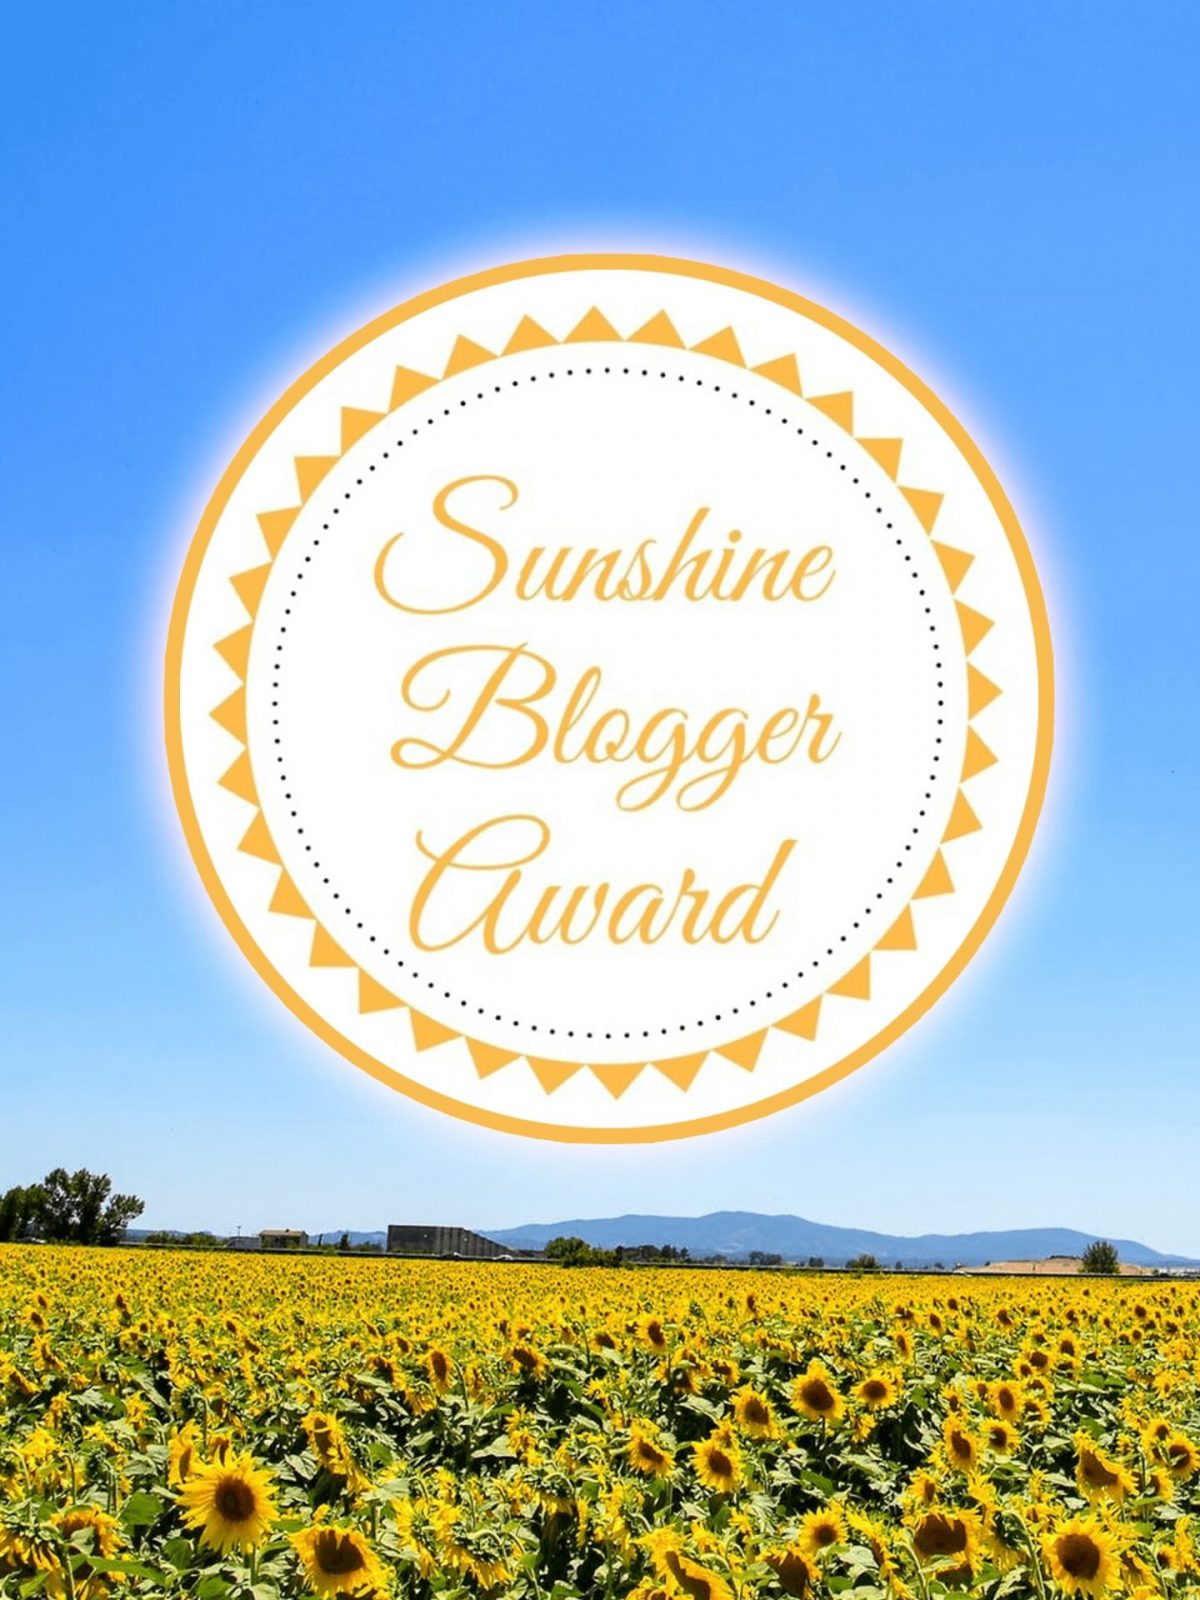 Above a field of yellow flowers, against a clear blue sky, is a large white circle, with a yellow border made up of little triangles like the pointed border of the sun. In the centre of the white circle is large yellow text, in a curly script font, that says Sunshine Blogger Award.